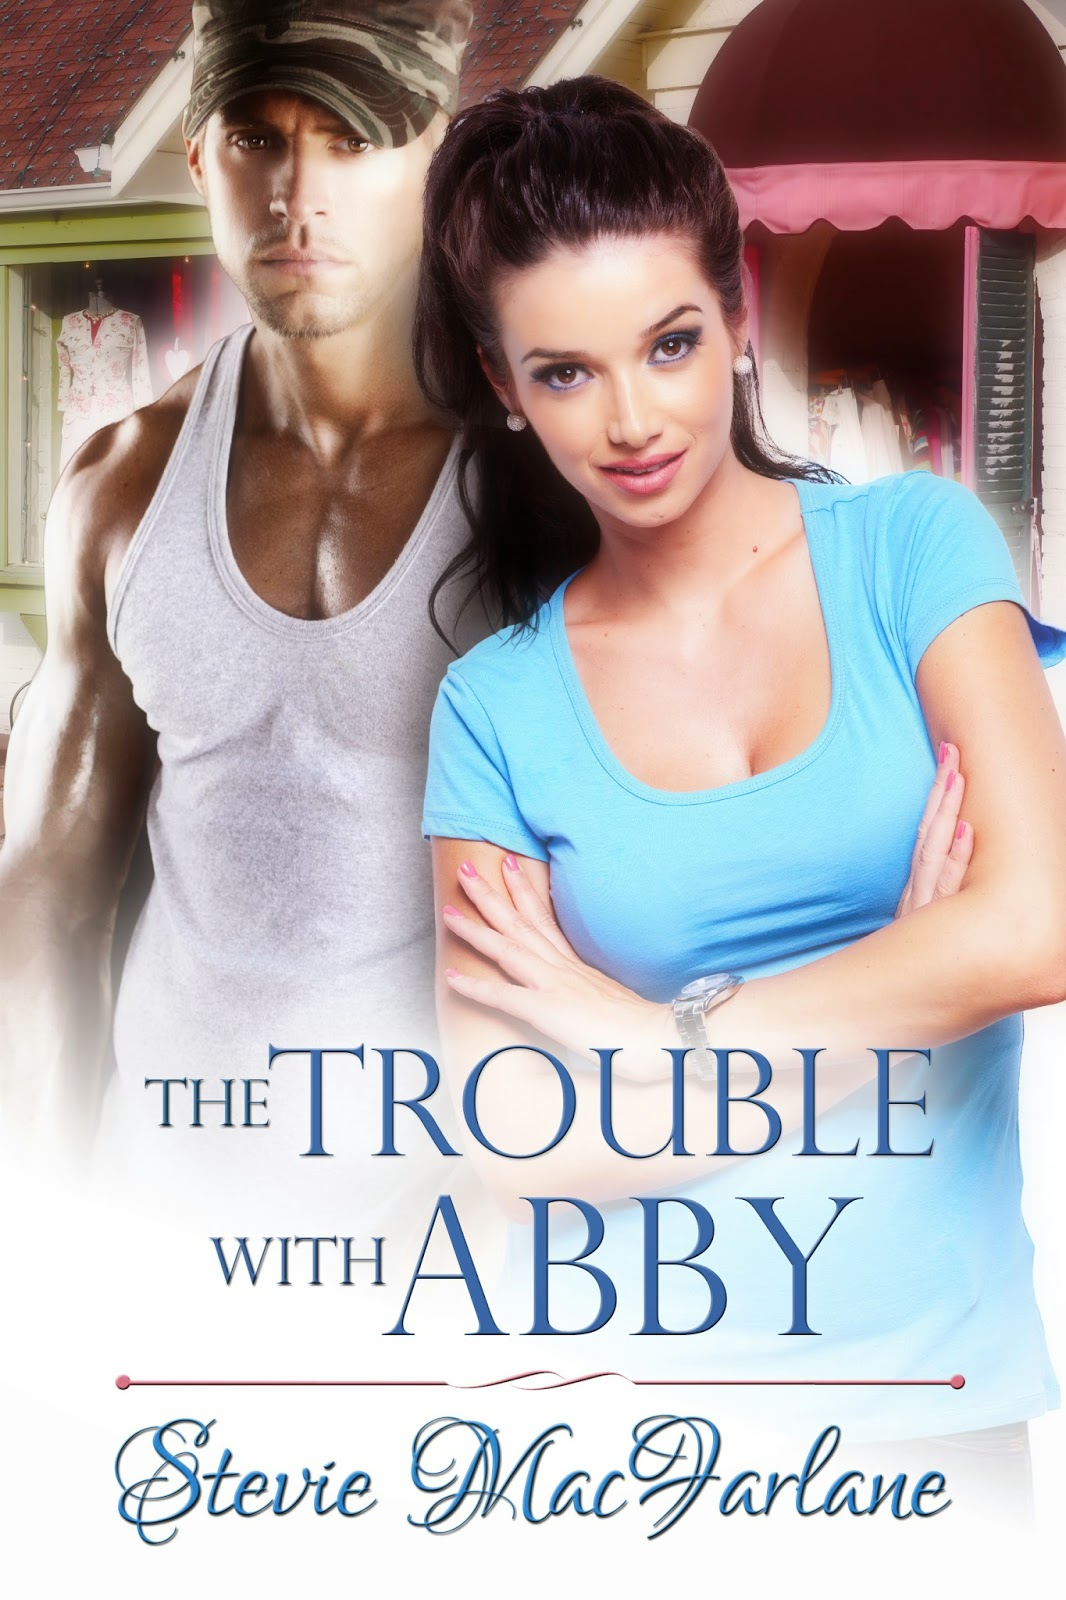 http://www.amazon.com/Trouble-Abby-Stevie-MacFarlane-ebook/dp/B00Q0JX3PY/ref=sr_1_1?ie=UTF8&qid=1418059357&sr=8-1&keywords=The+Trouble+with+Abby